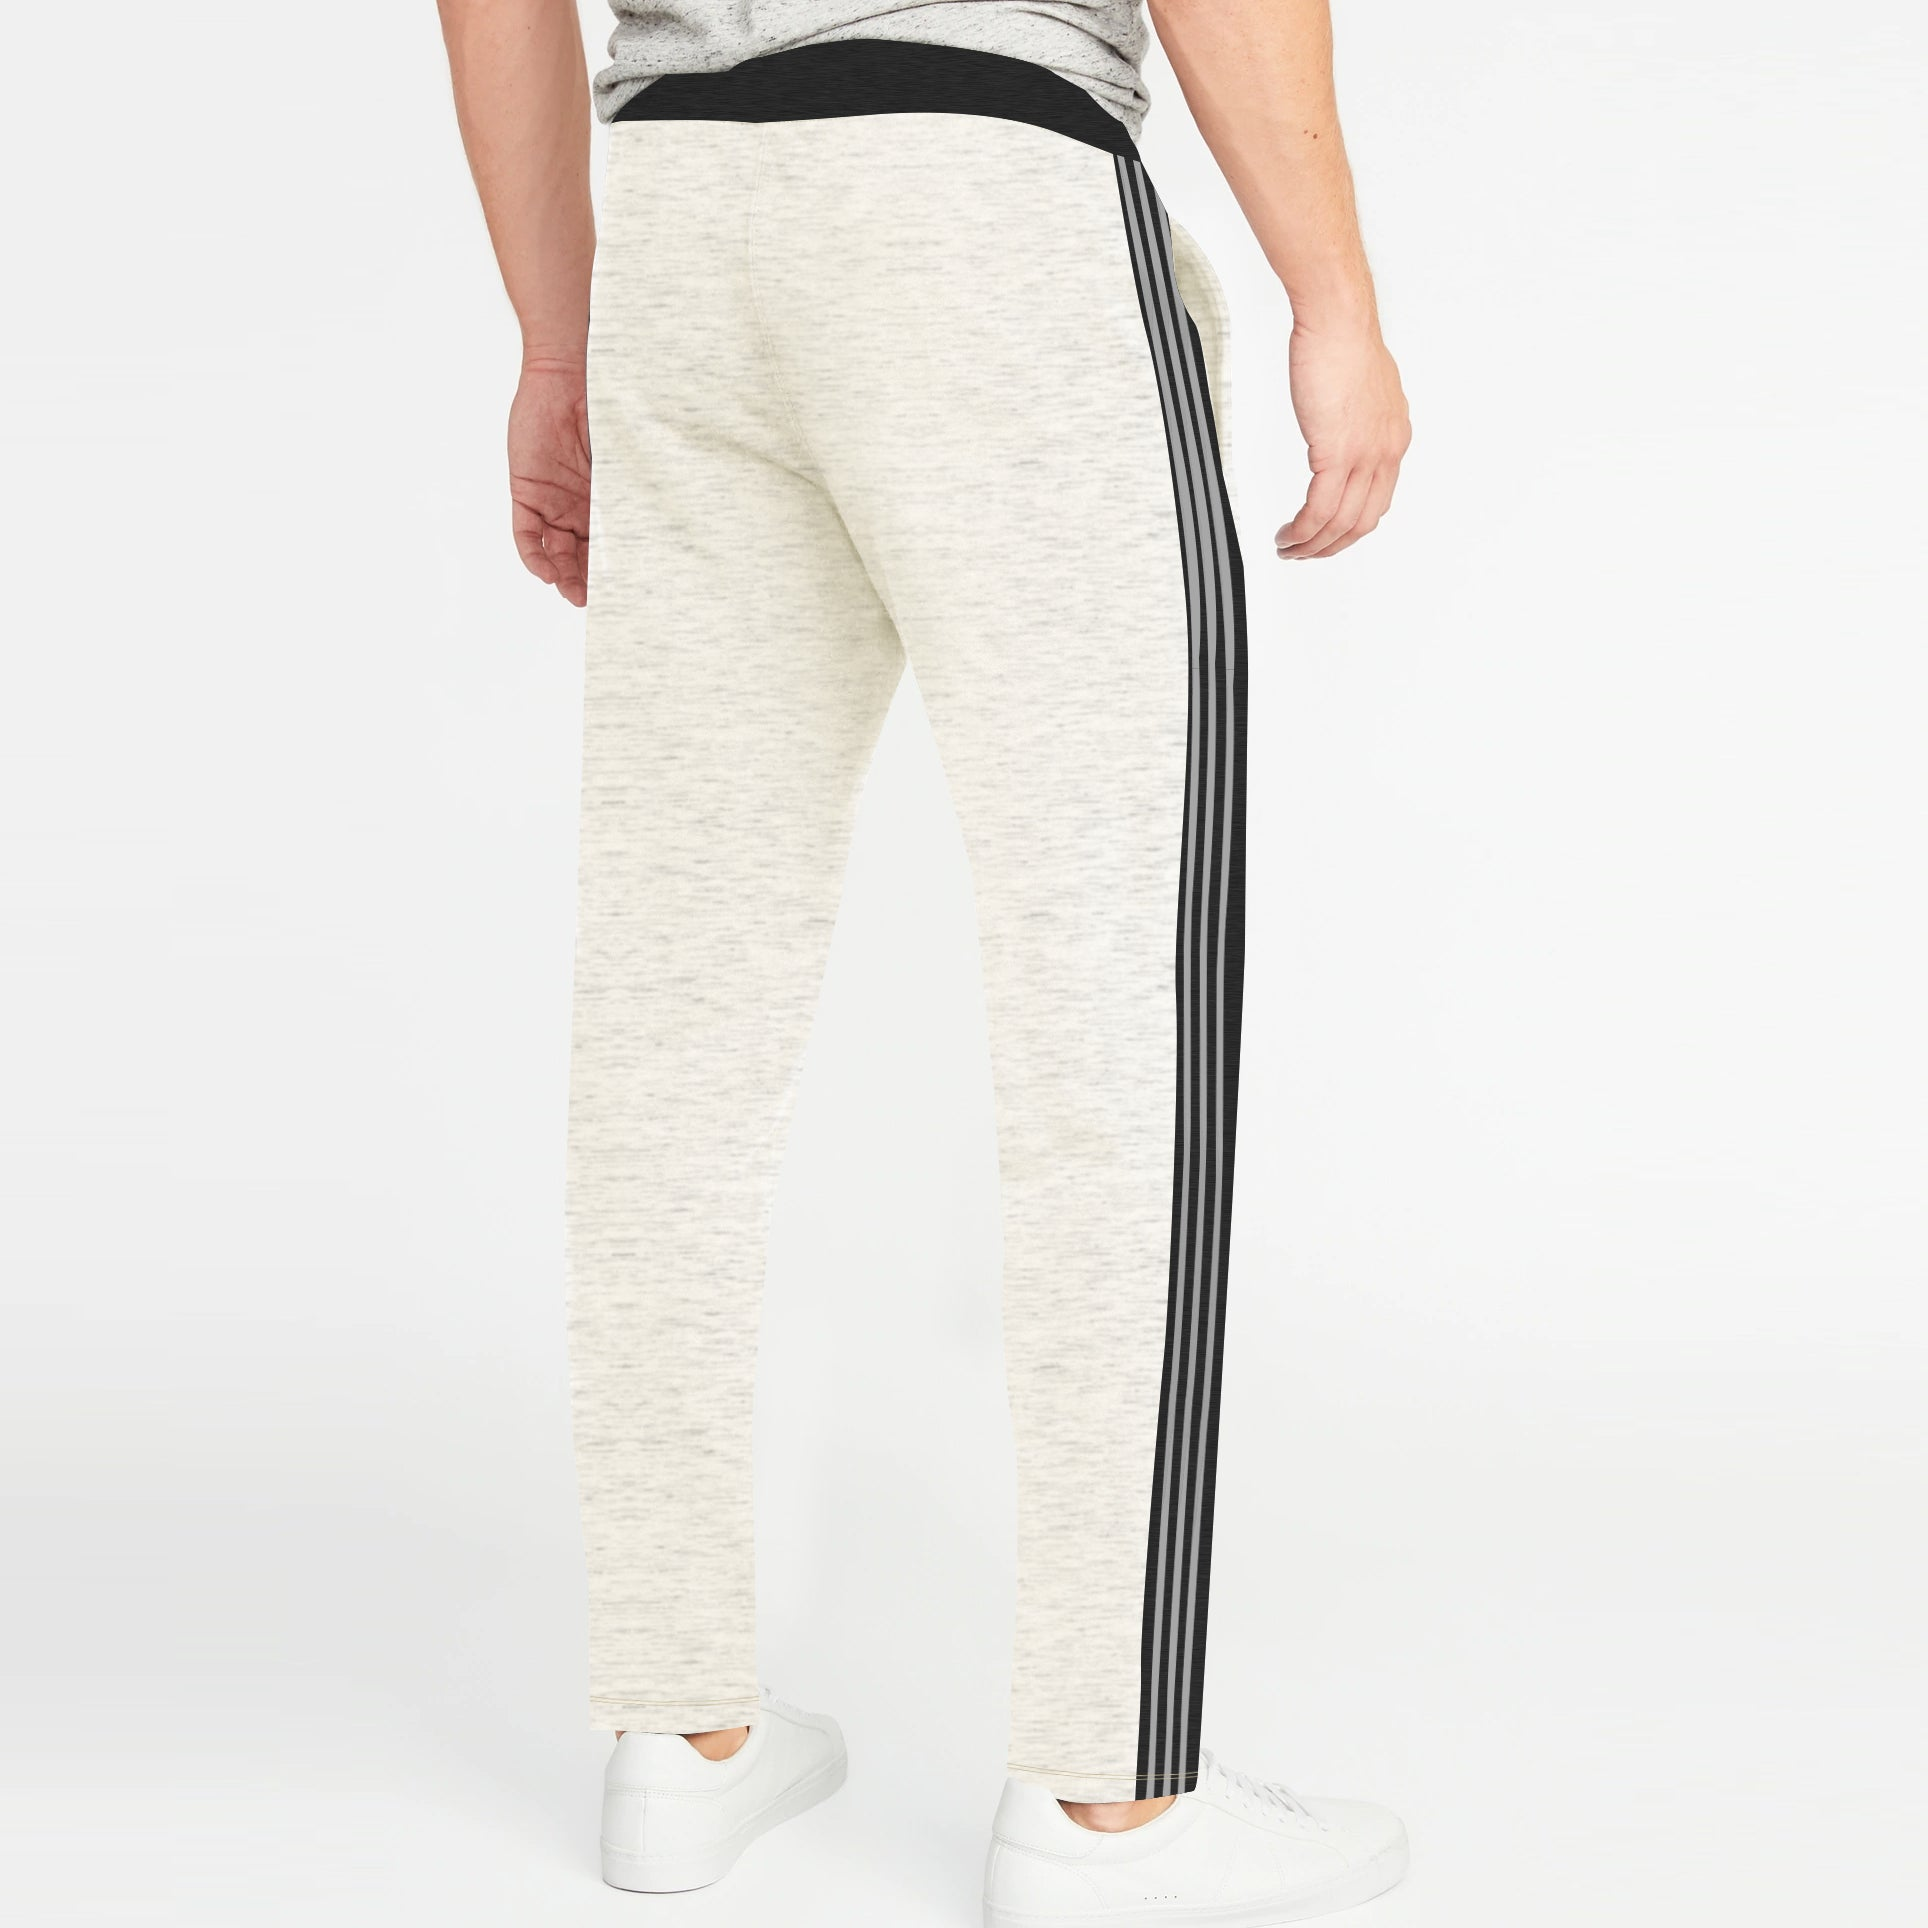 55ce3b19c Adidas Single Jersey Regular Fit Trouser For Men-Light Yellow Melange with  Charcoal & Grey